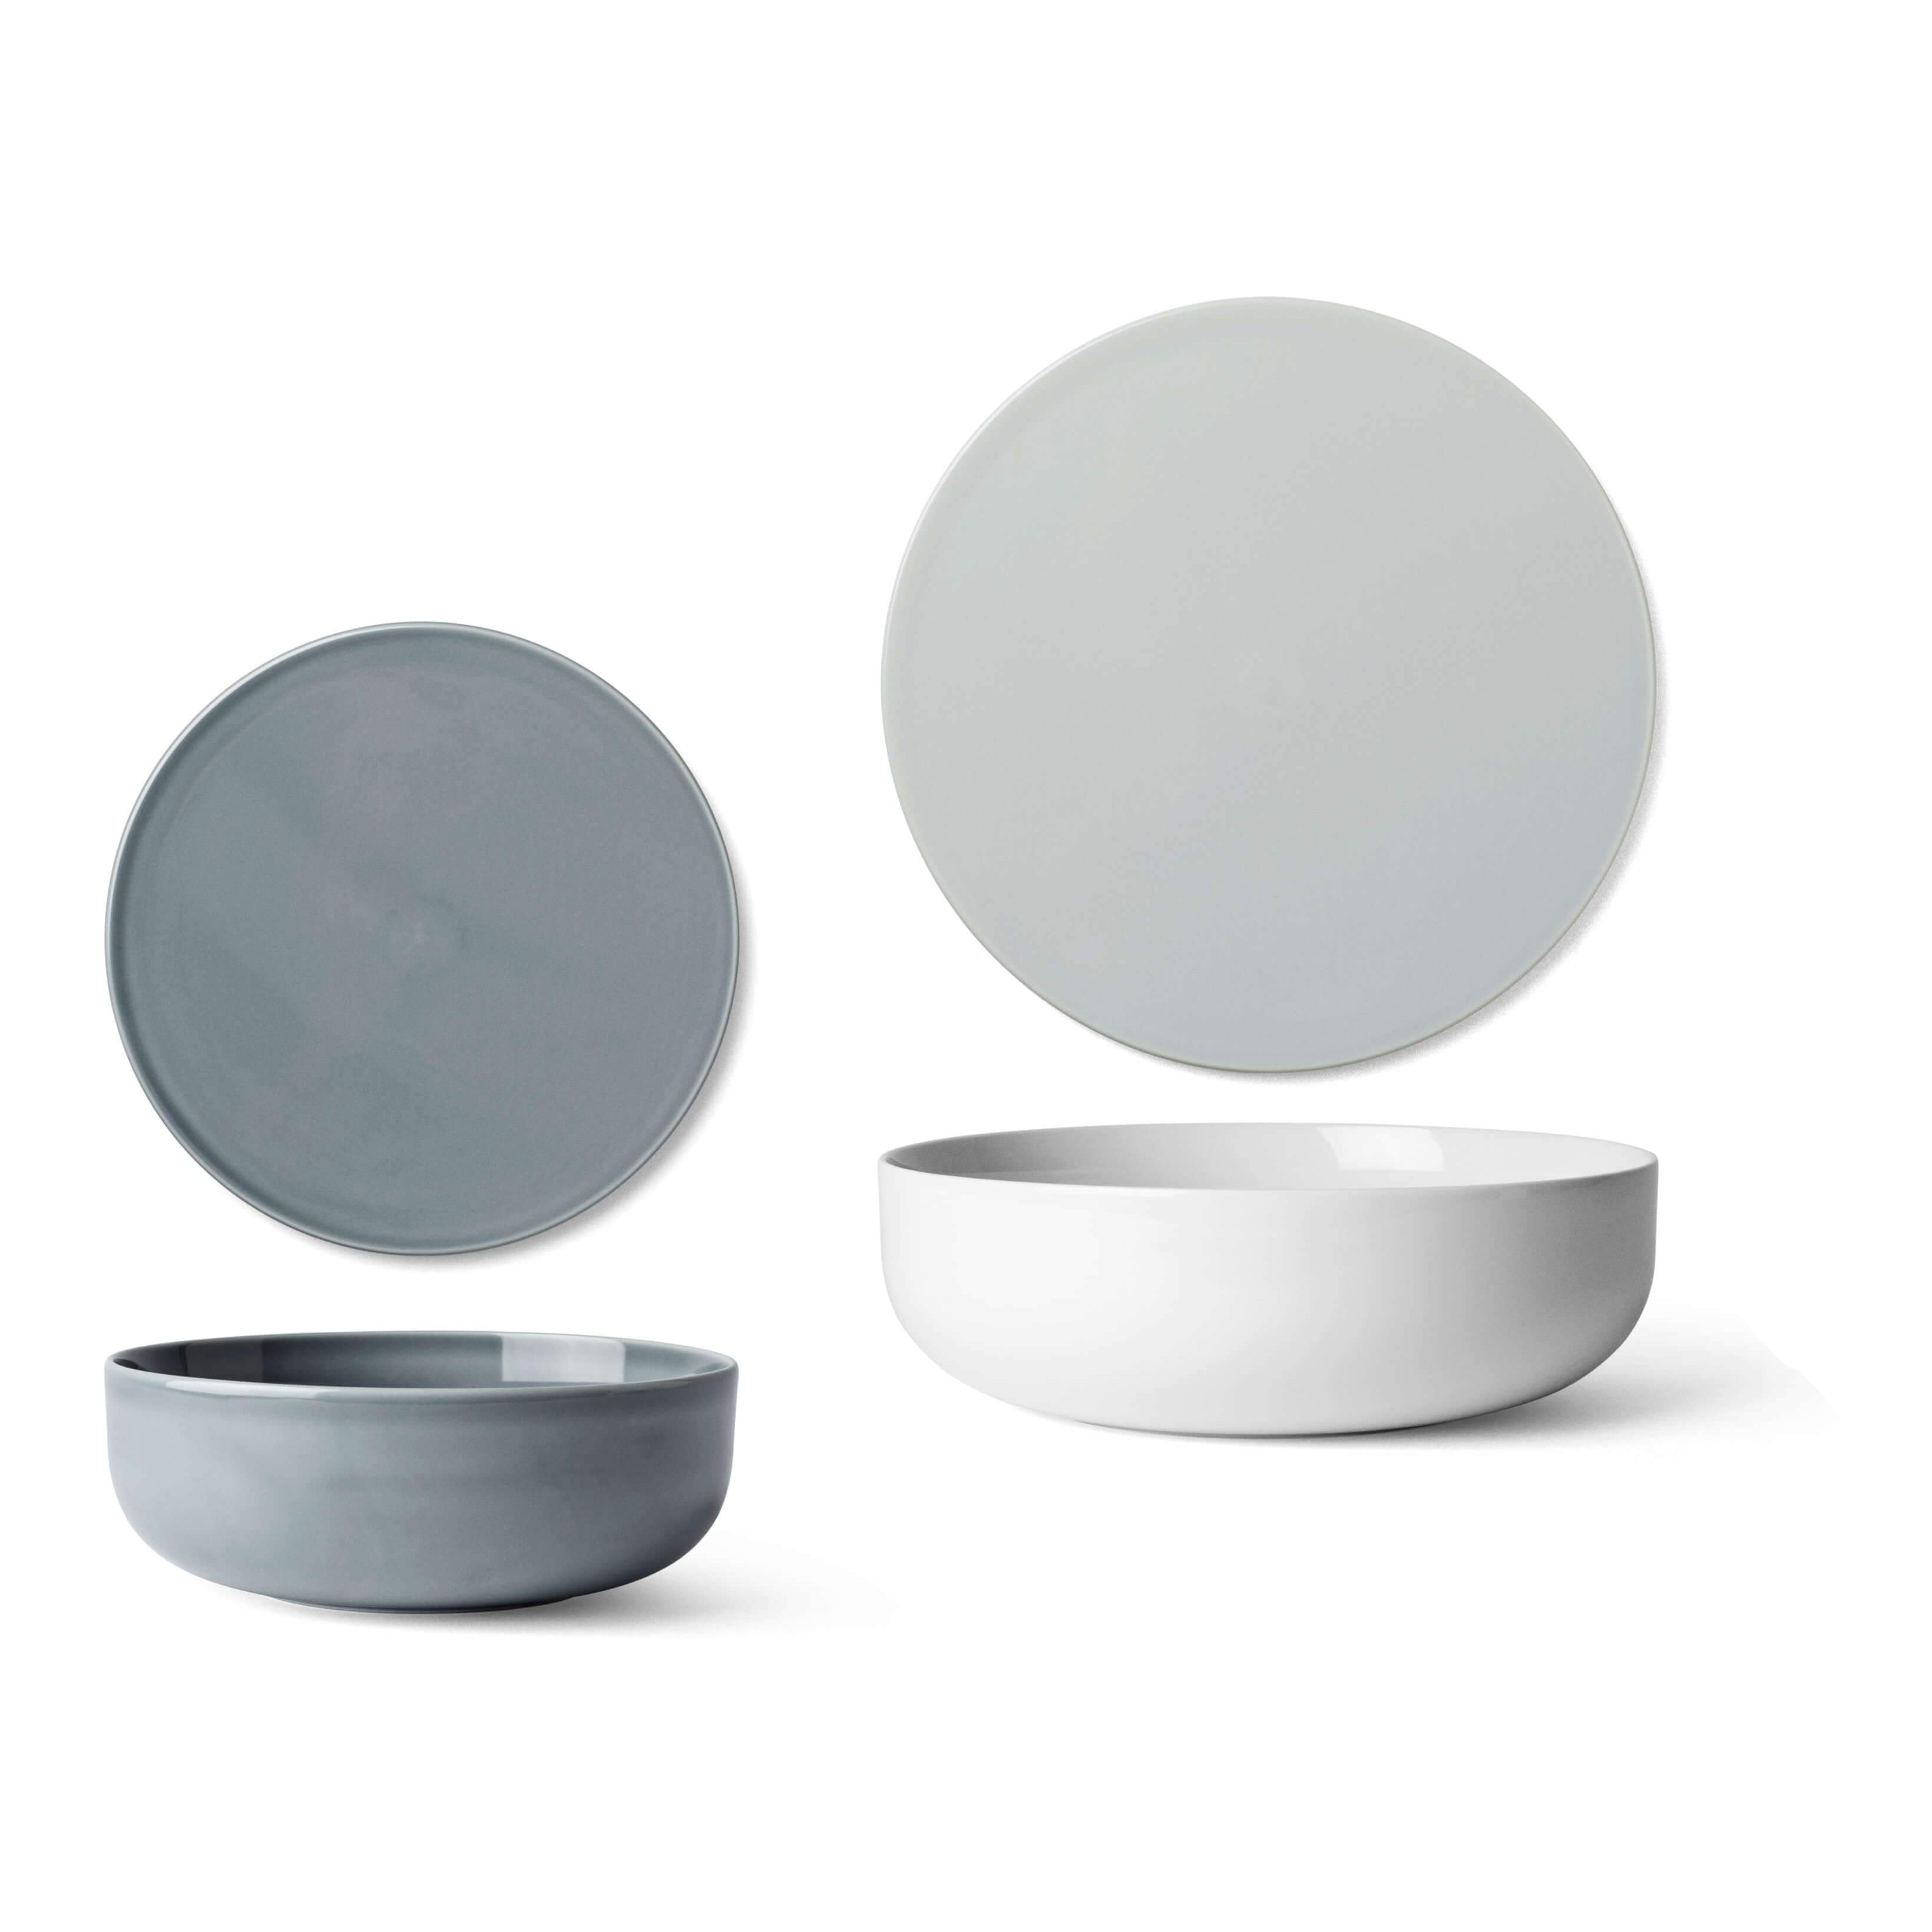 New Norm Dinnerware: Bowl + Plate/Lid